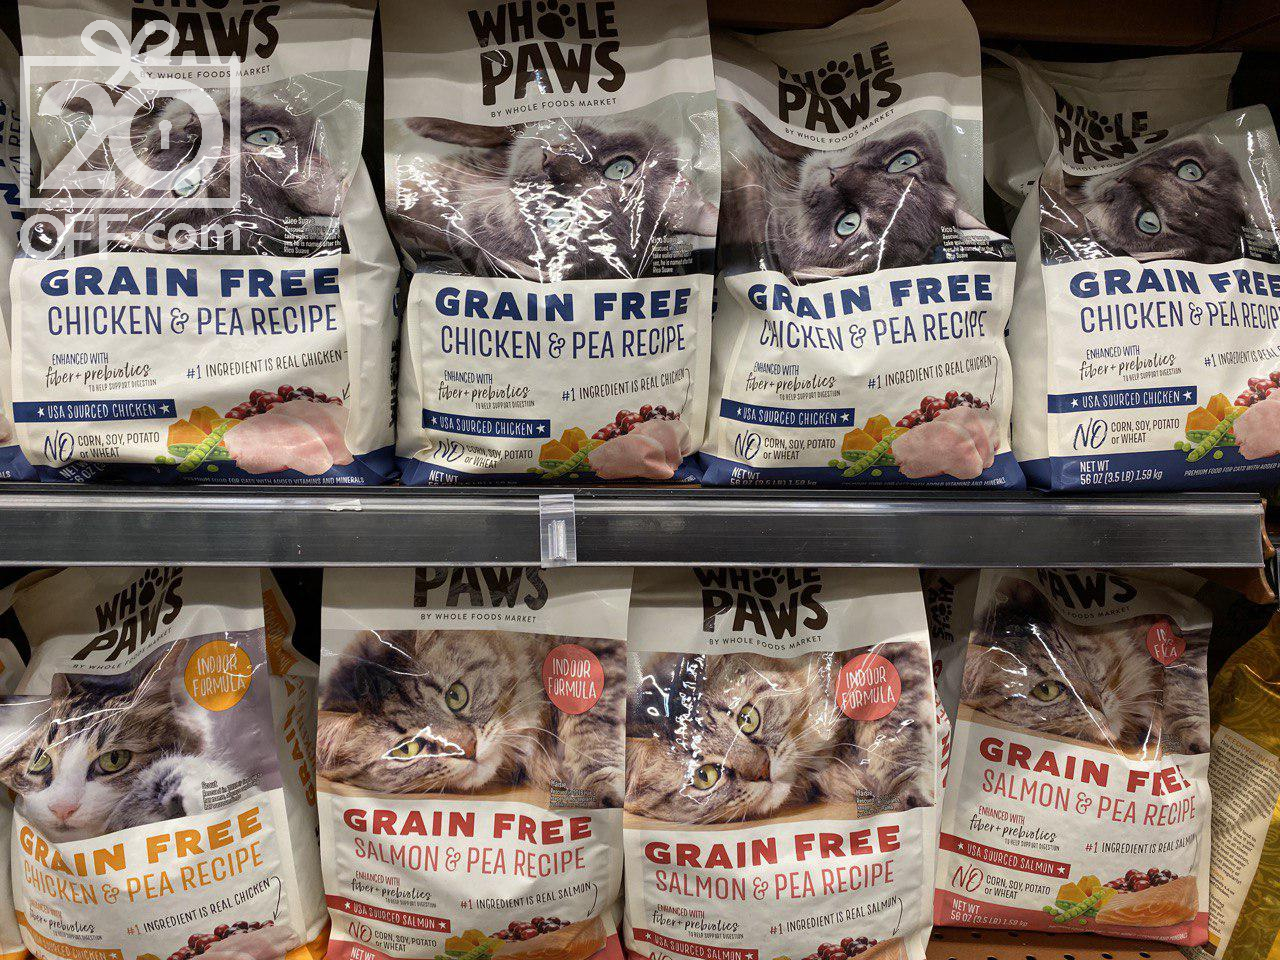 Whole Paws Cat Food